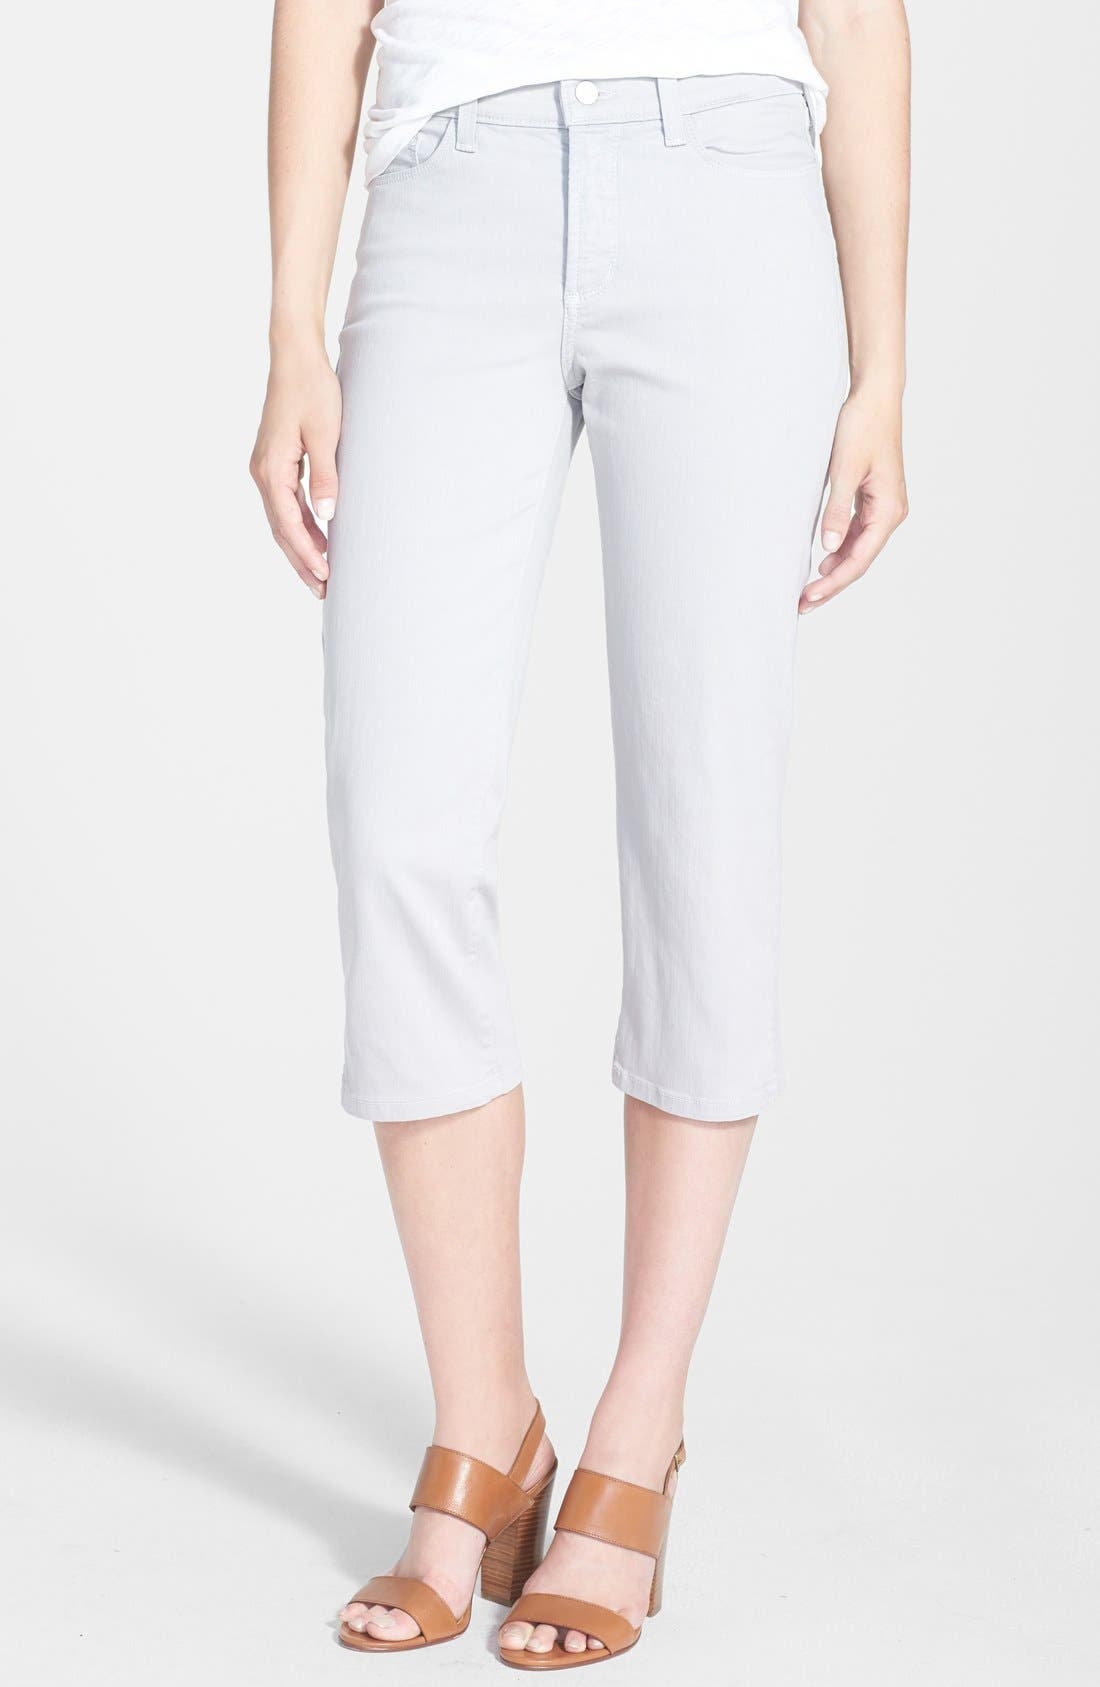 Alternate Image 1 Selected - NYDJ 'Hayden' Stretch Cotton Crop Pants (Regular & Petite)